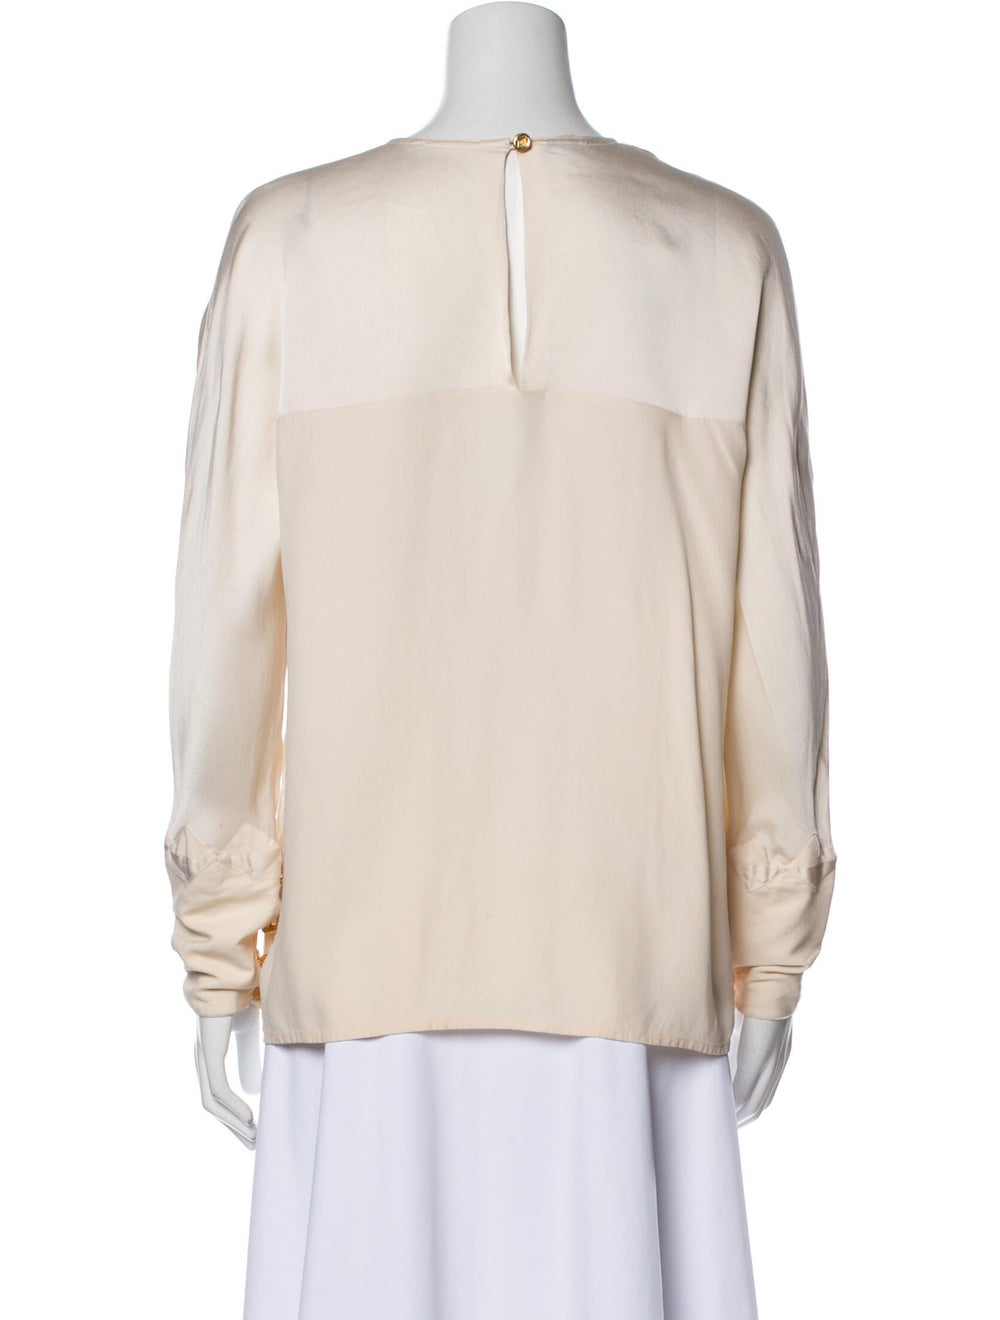 Chanel Vintage Late 1980's - Early 1990's Blouse - image 3